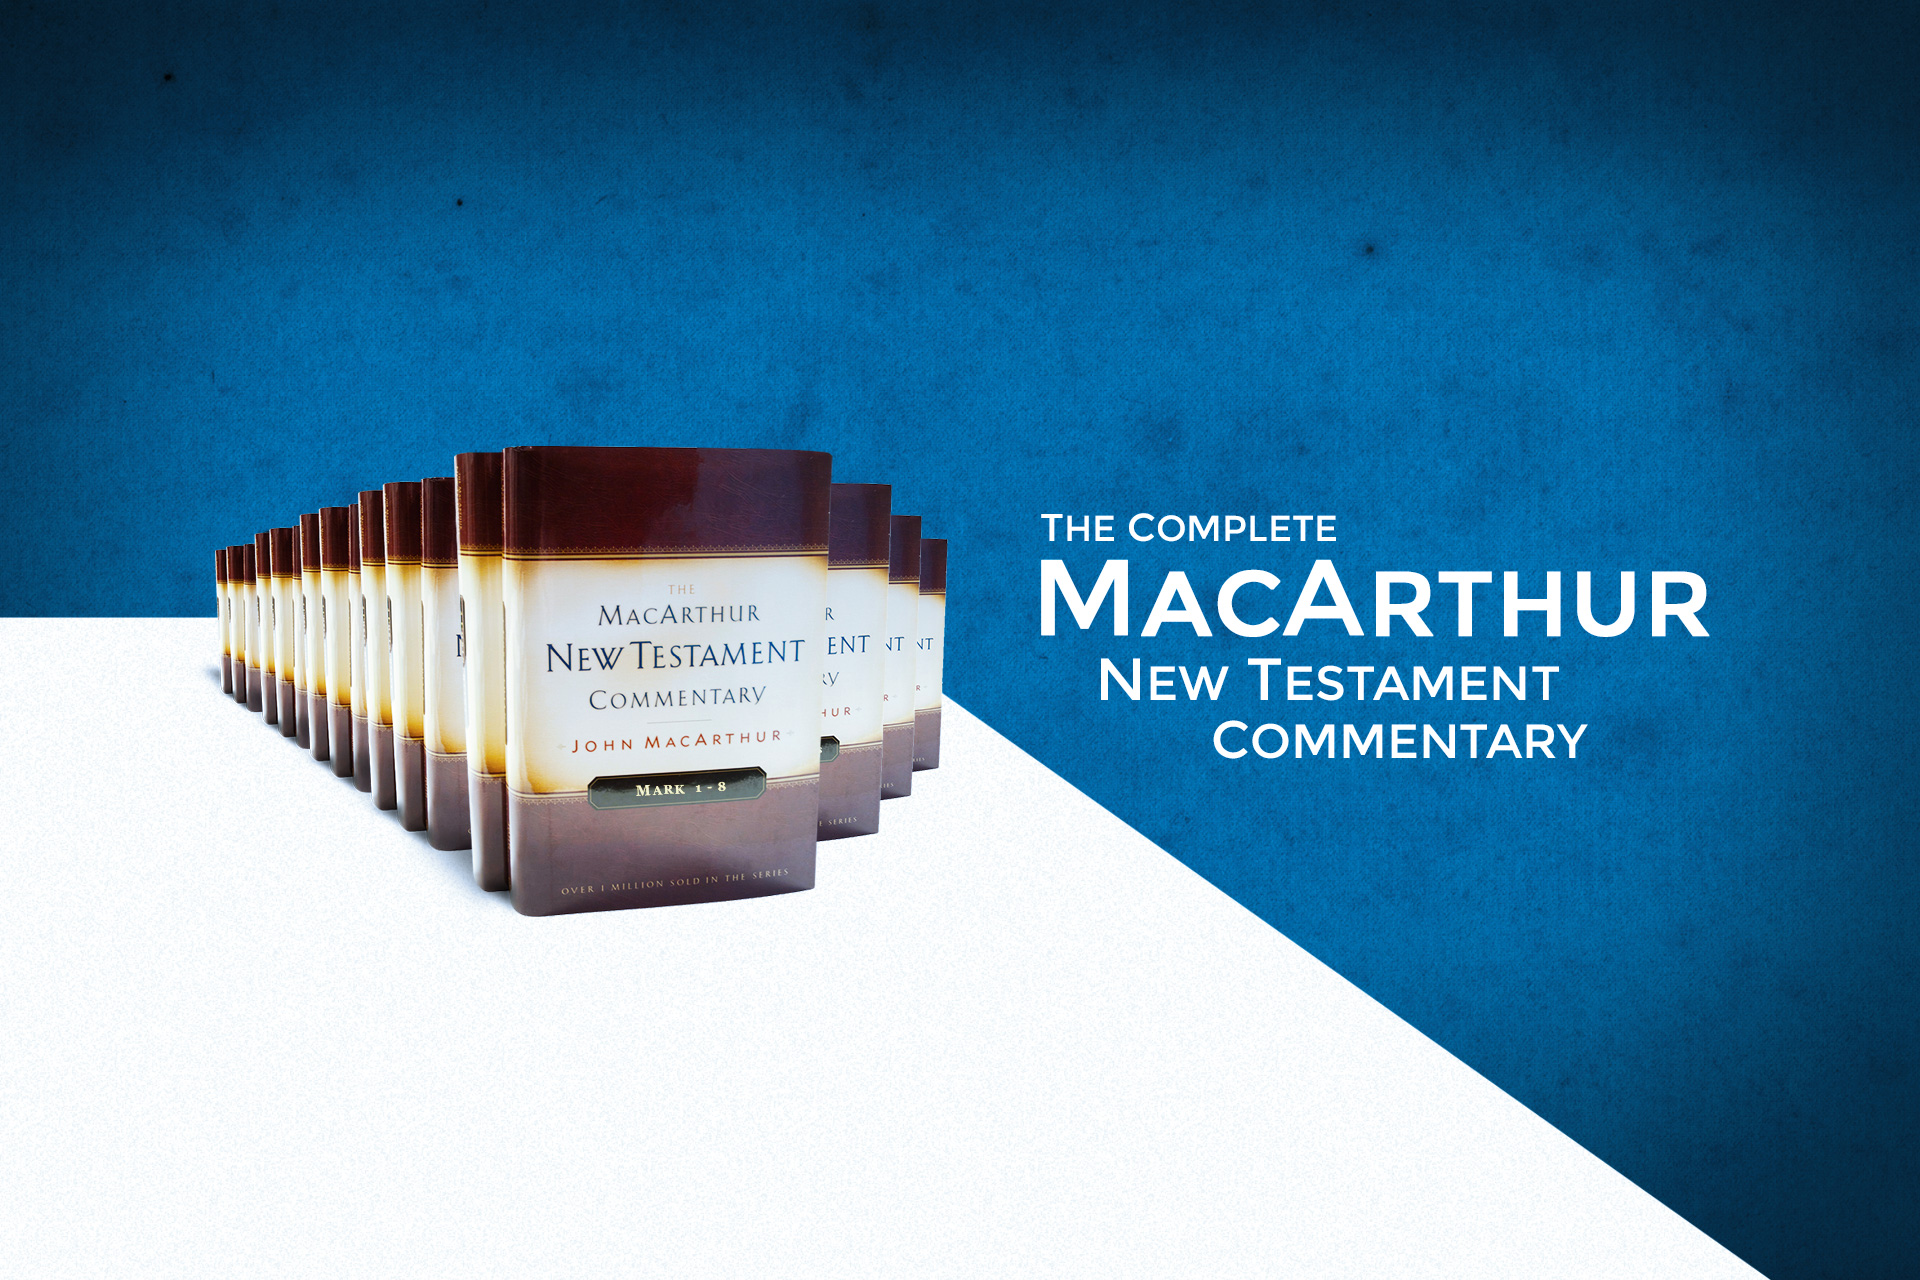 The MacArthur New Testament Commentaries